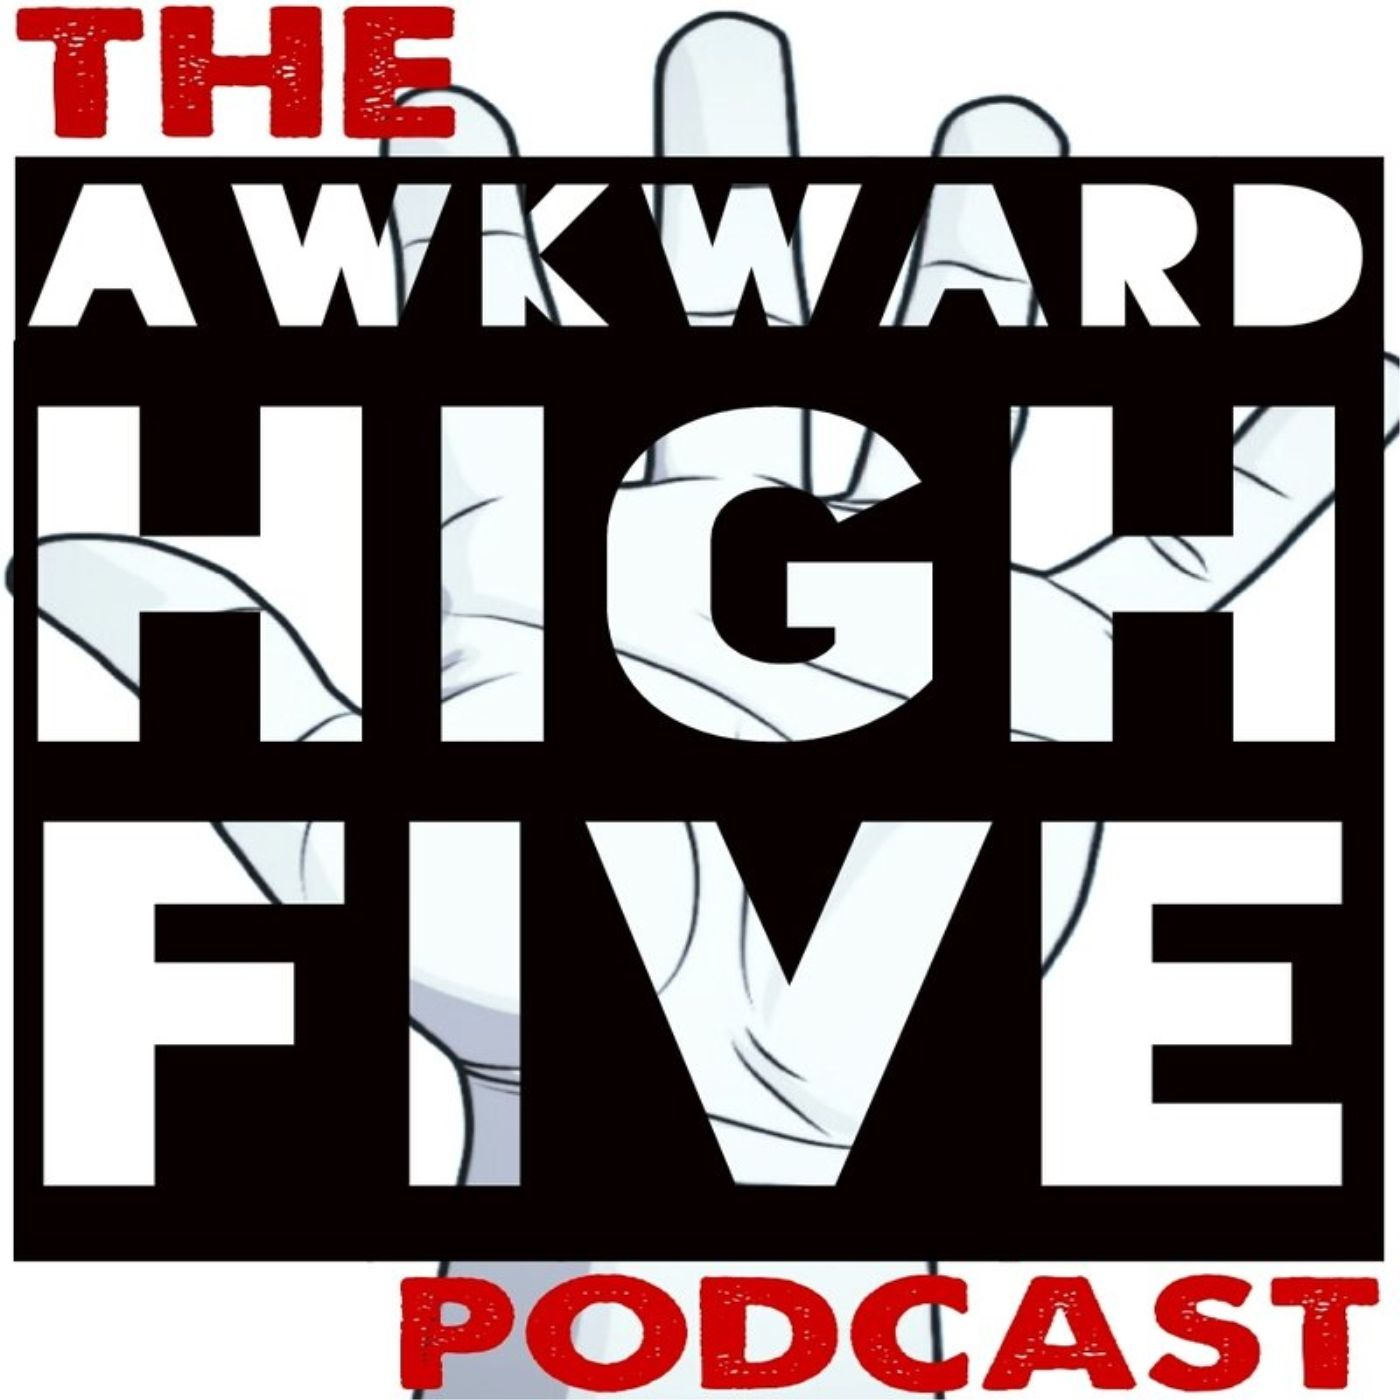 Awkward High Five Podcast